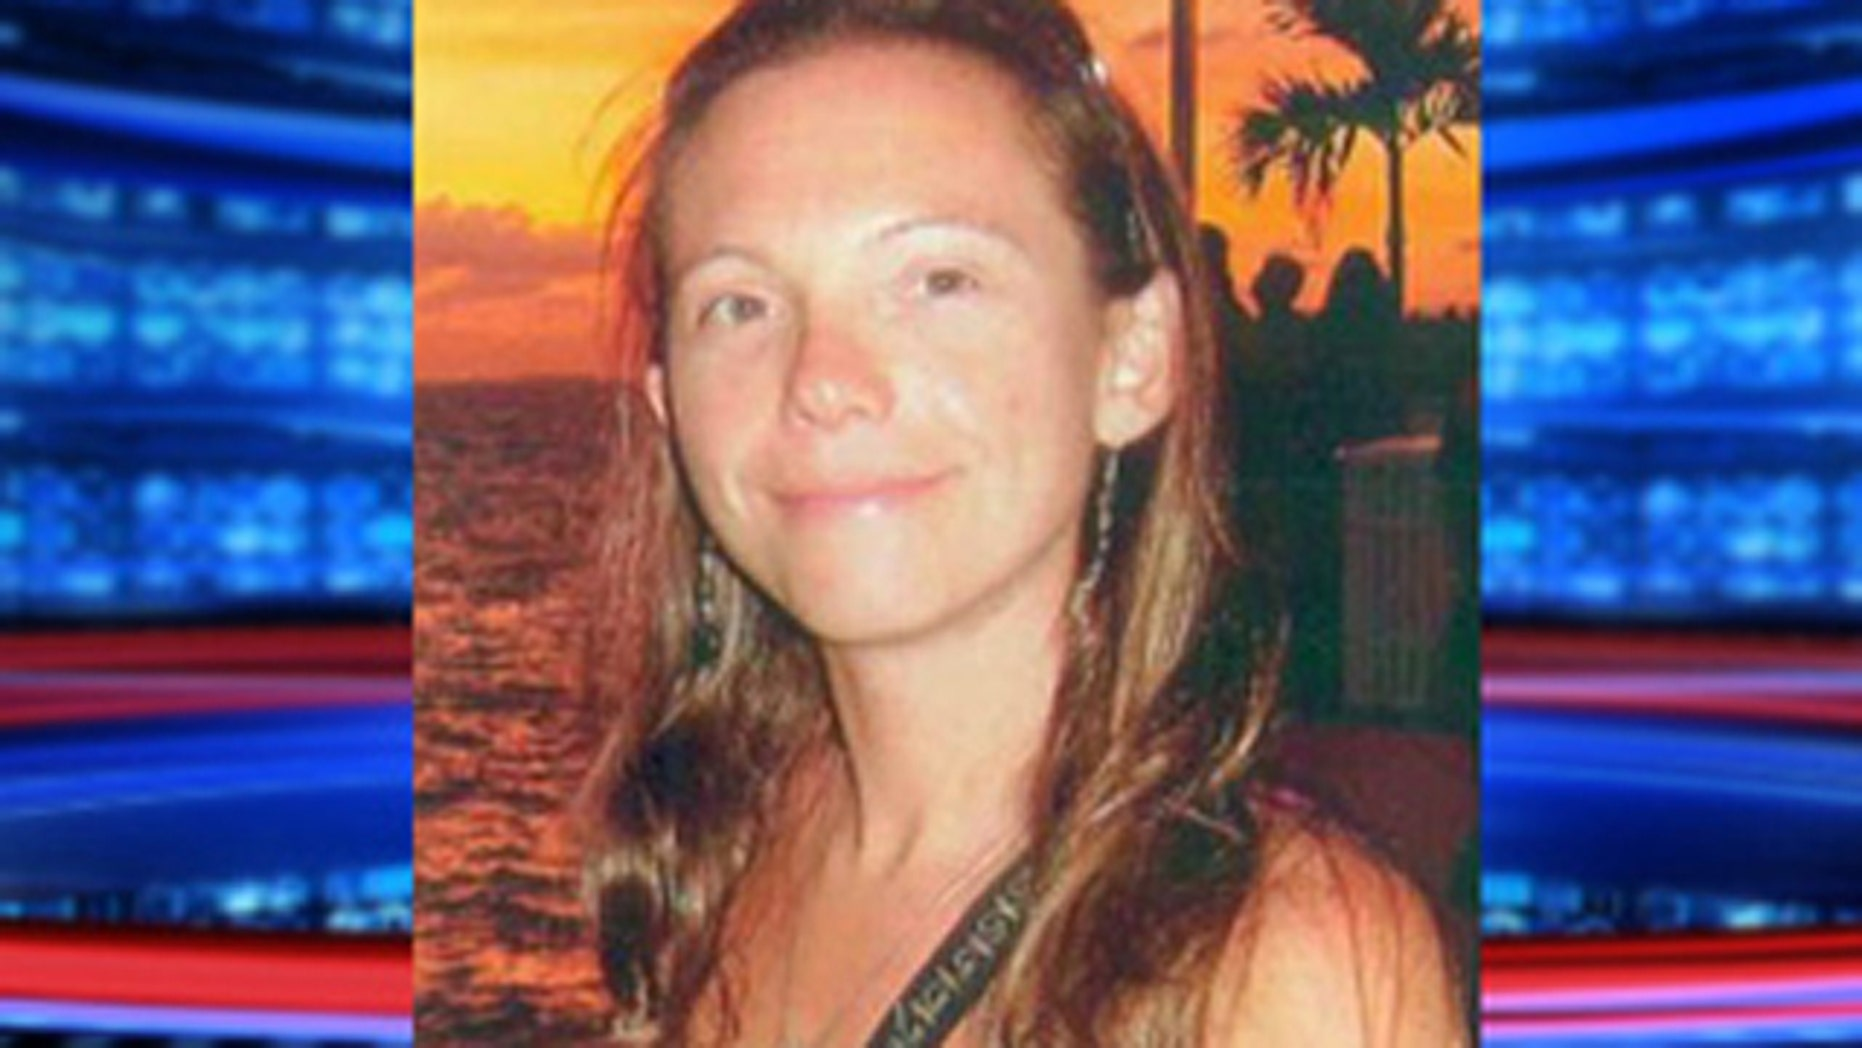 This undated photo shows Kelly Rothwell who was last seen March 12, 2011.